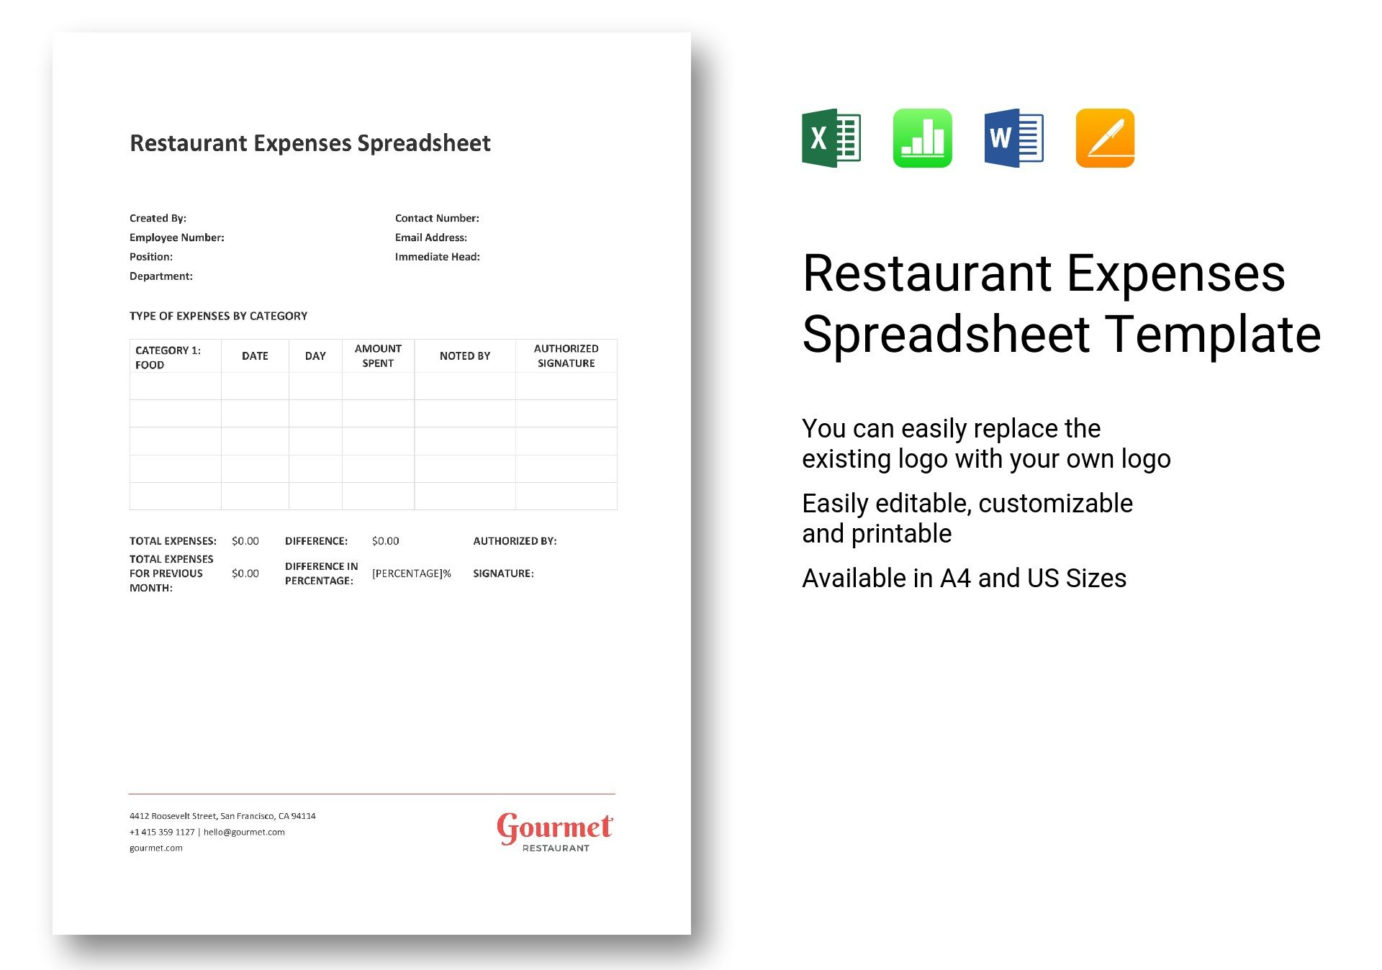 Restaurant Expense Spreadsheet Template In Restaurant Expenses Spreadsheet Template In Word, Excel, Apple Pages